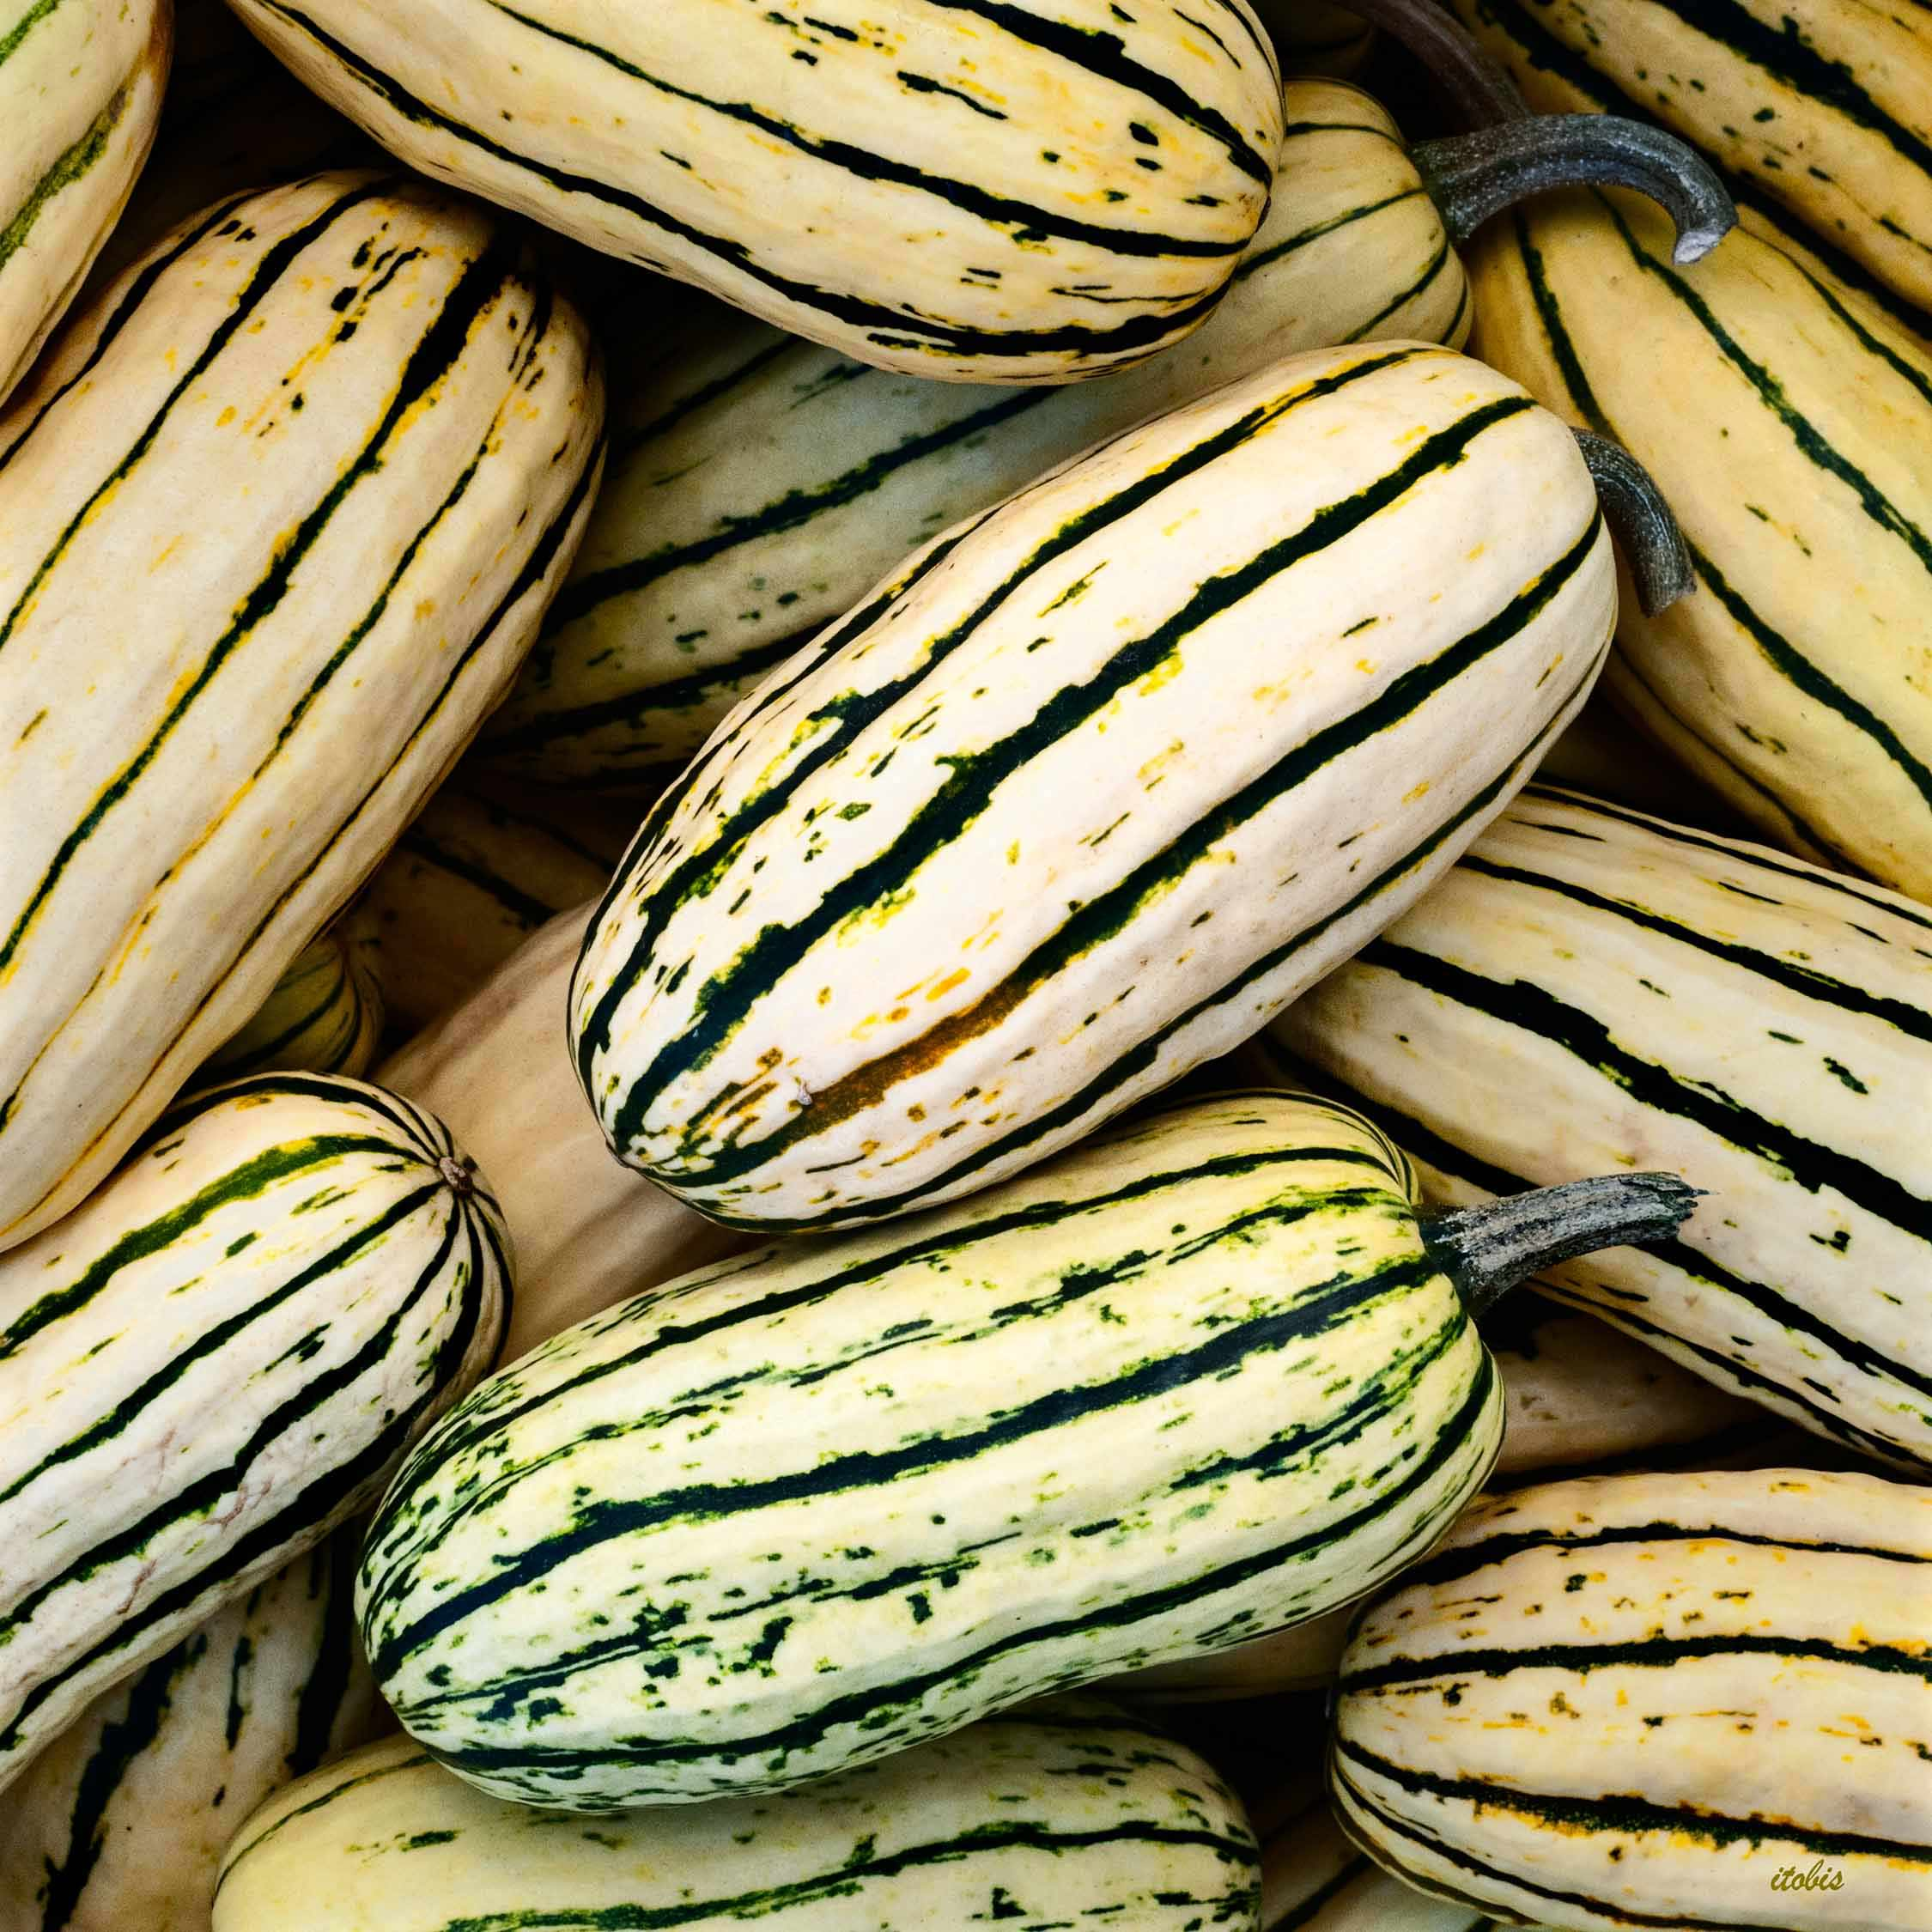 KITCHEN PHOTO BOARD : Delicata Squash - Luxy Farm - Ottawa Farmers' Market, Lansdowne Park - photo by Irene Tobis